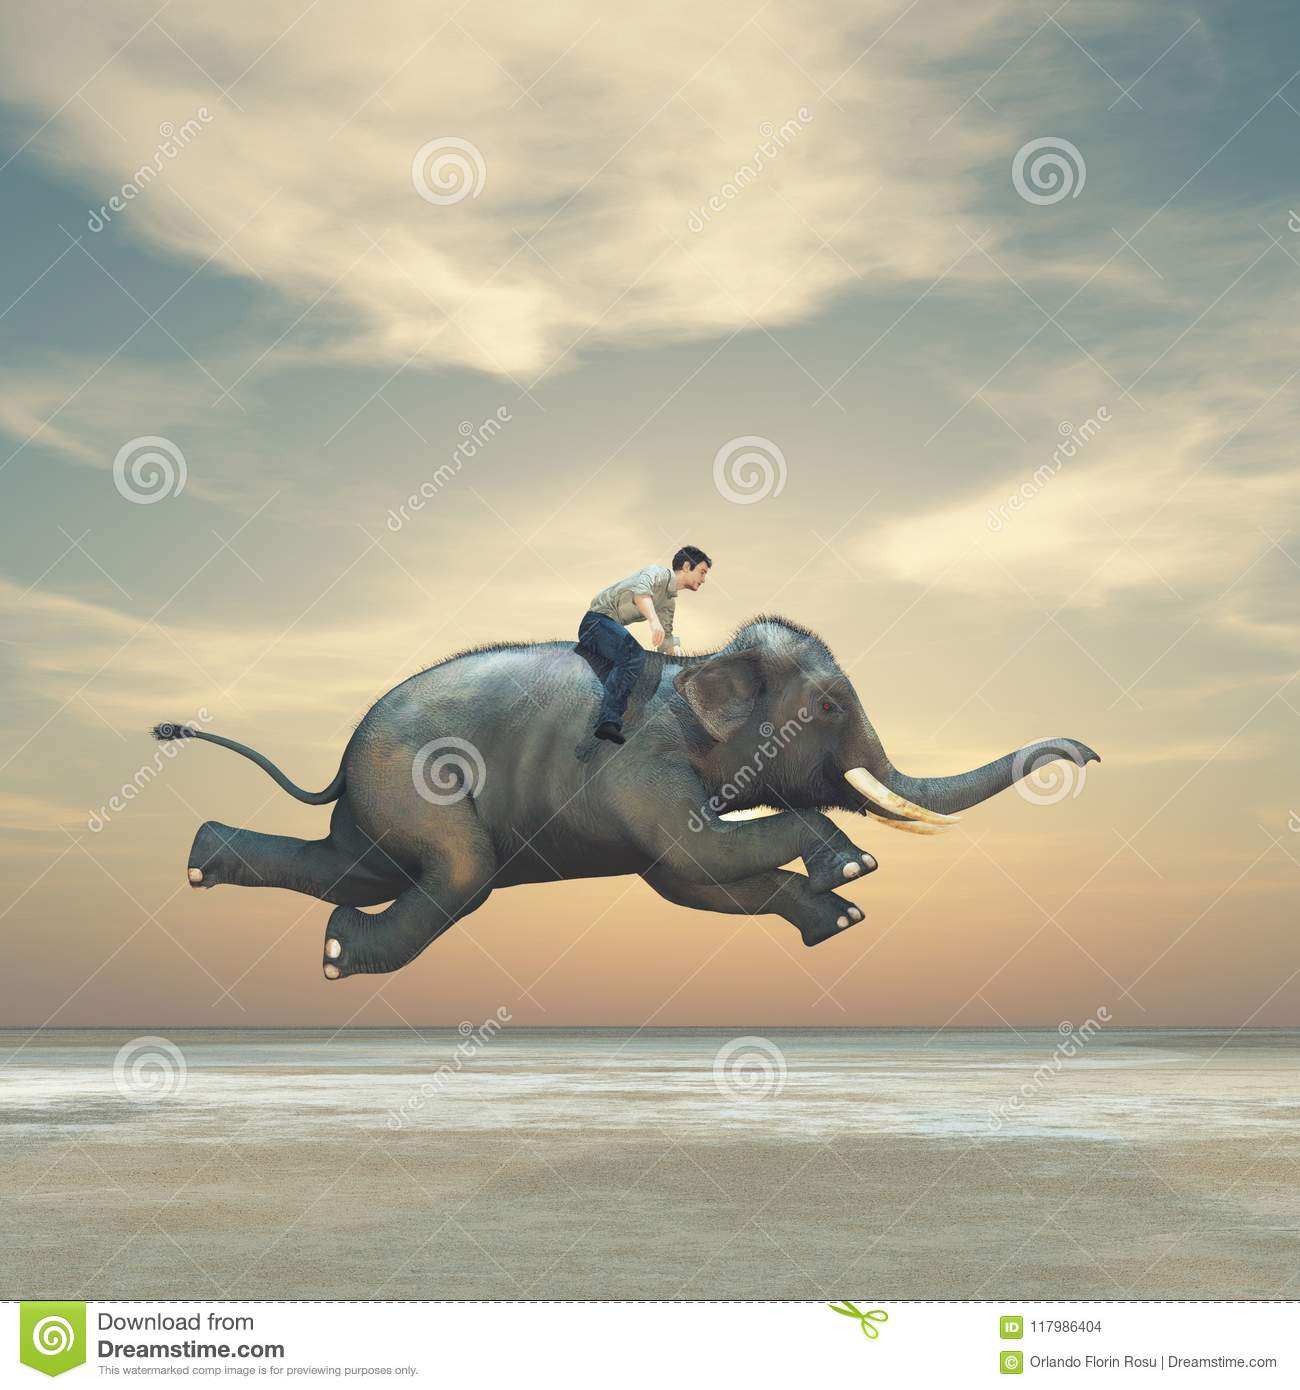 Download Surreal Image Of A Man Riding An Elephant Stock Illustration - Illustration of concept, pointing: 117986404